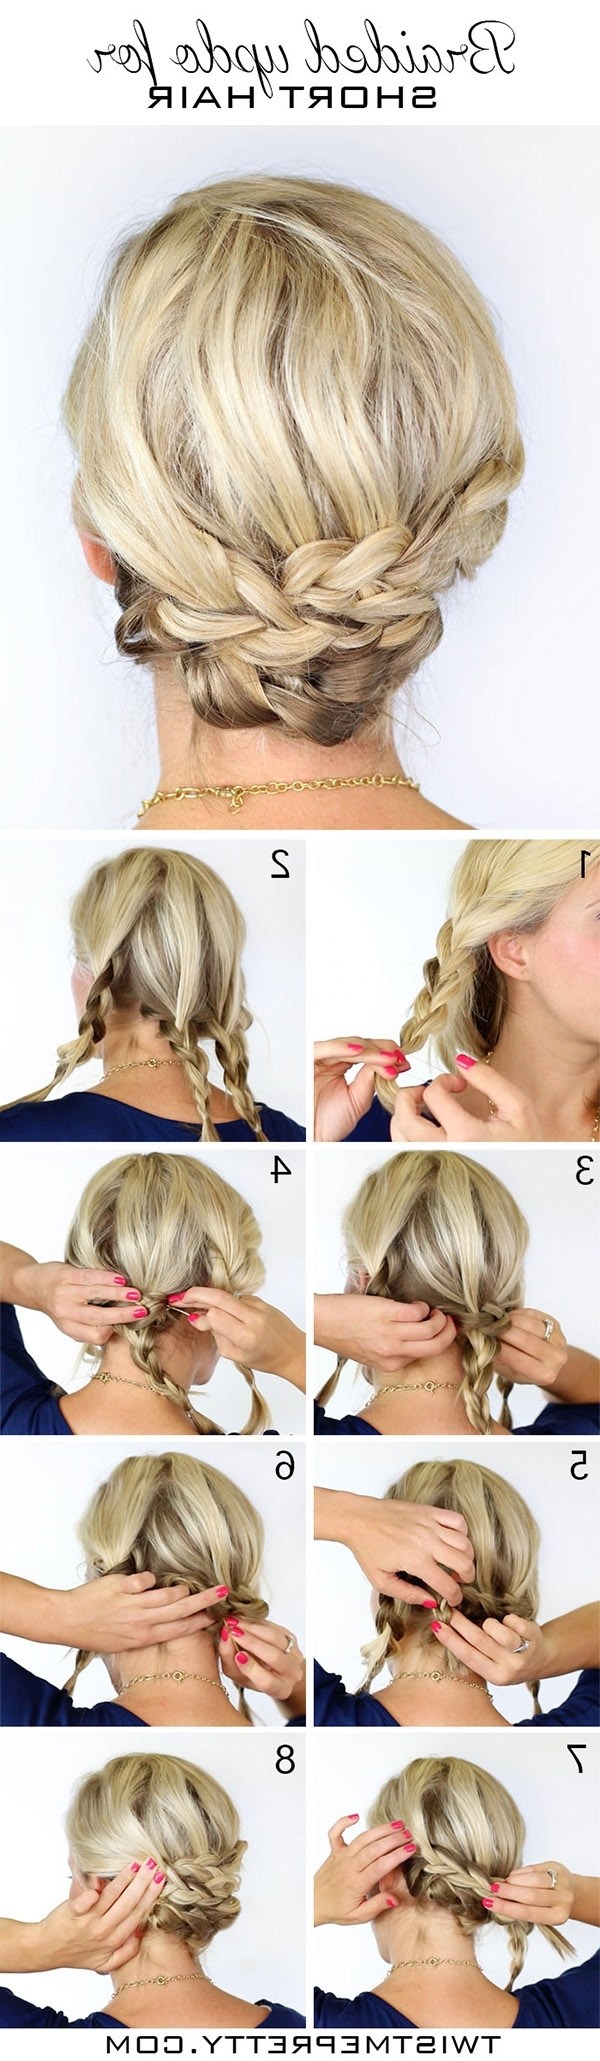 Well Liked Updos Wedding Hairstyles For Short Hair For 20 Diy Wedding Hairstyles With Tutorials To Try On Your Own (View 14 of 15)